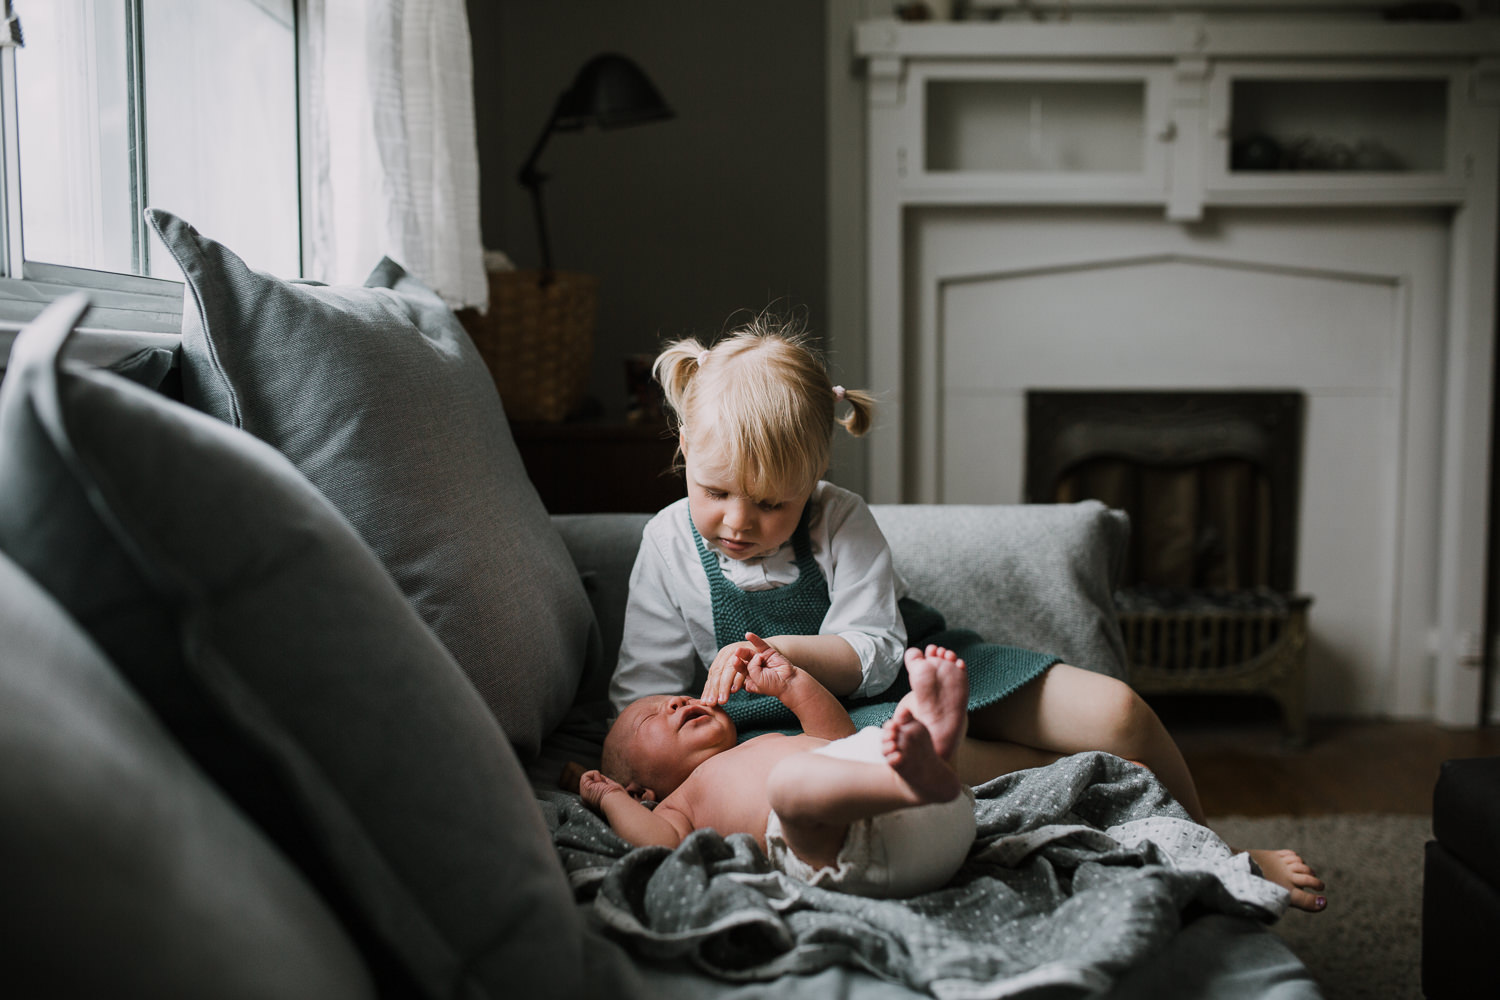 2 year old toddler girl sitting on couch looking at and soothing 10 day old baby brother - Newmarket In-Home Family Photos